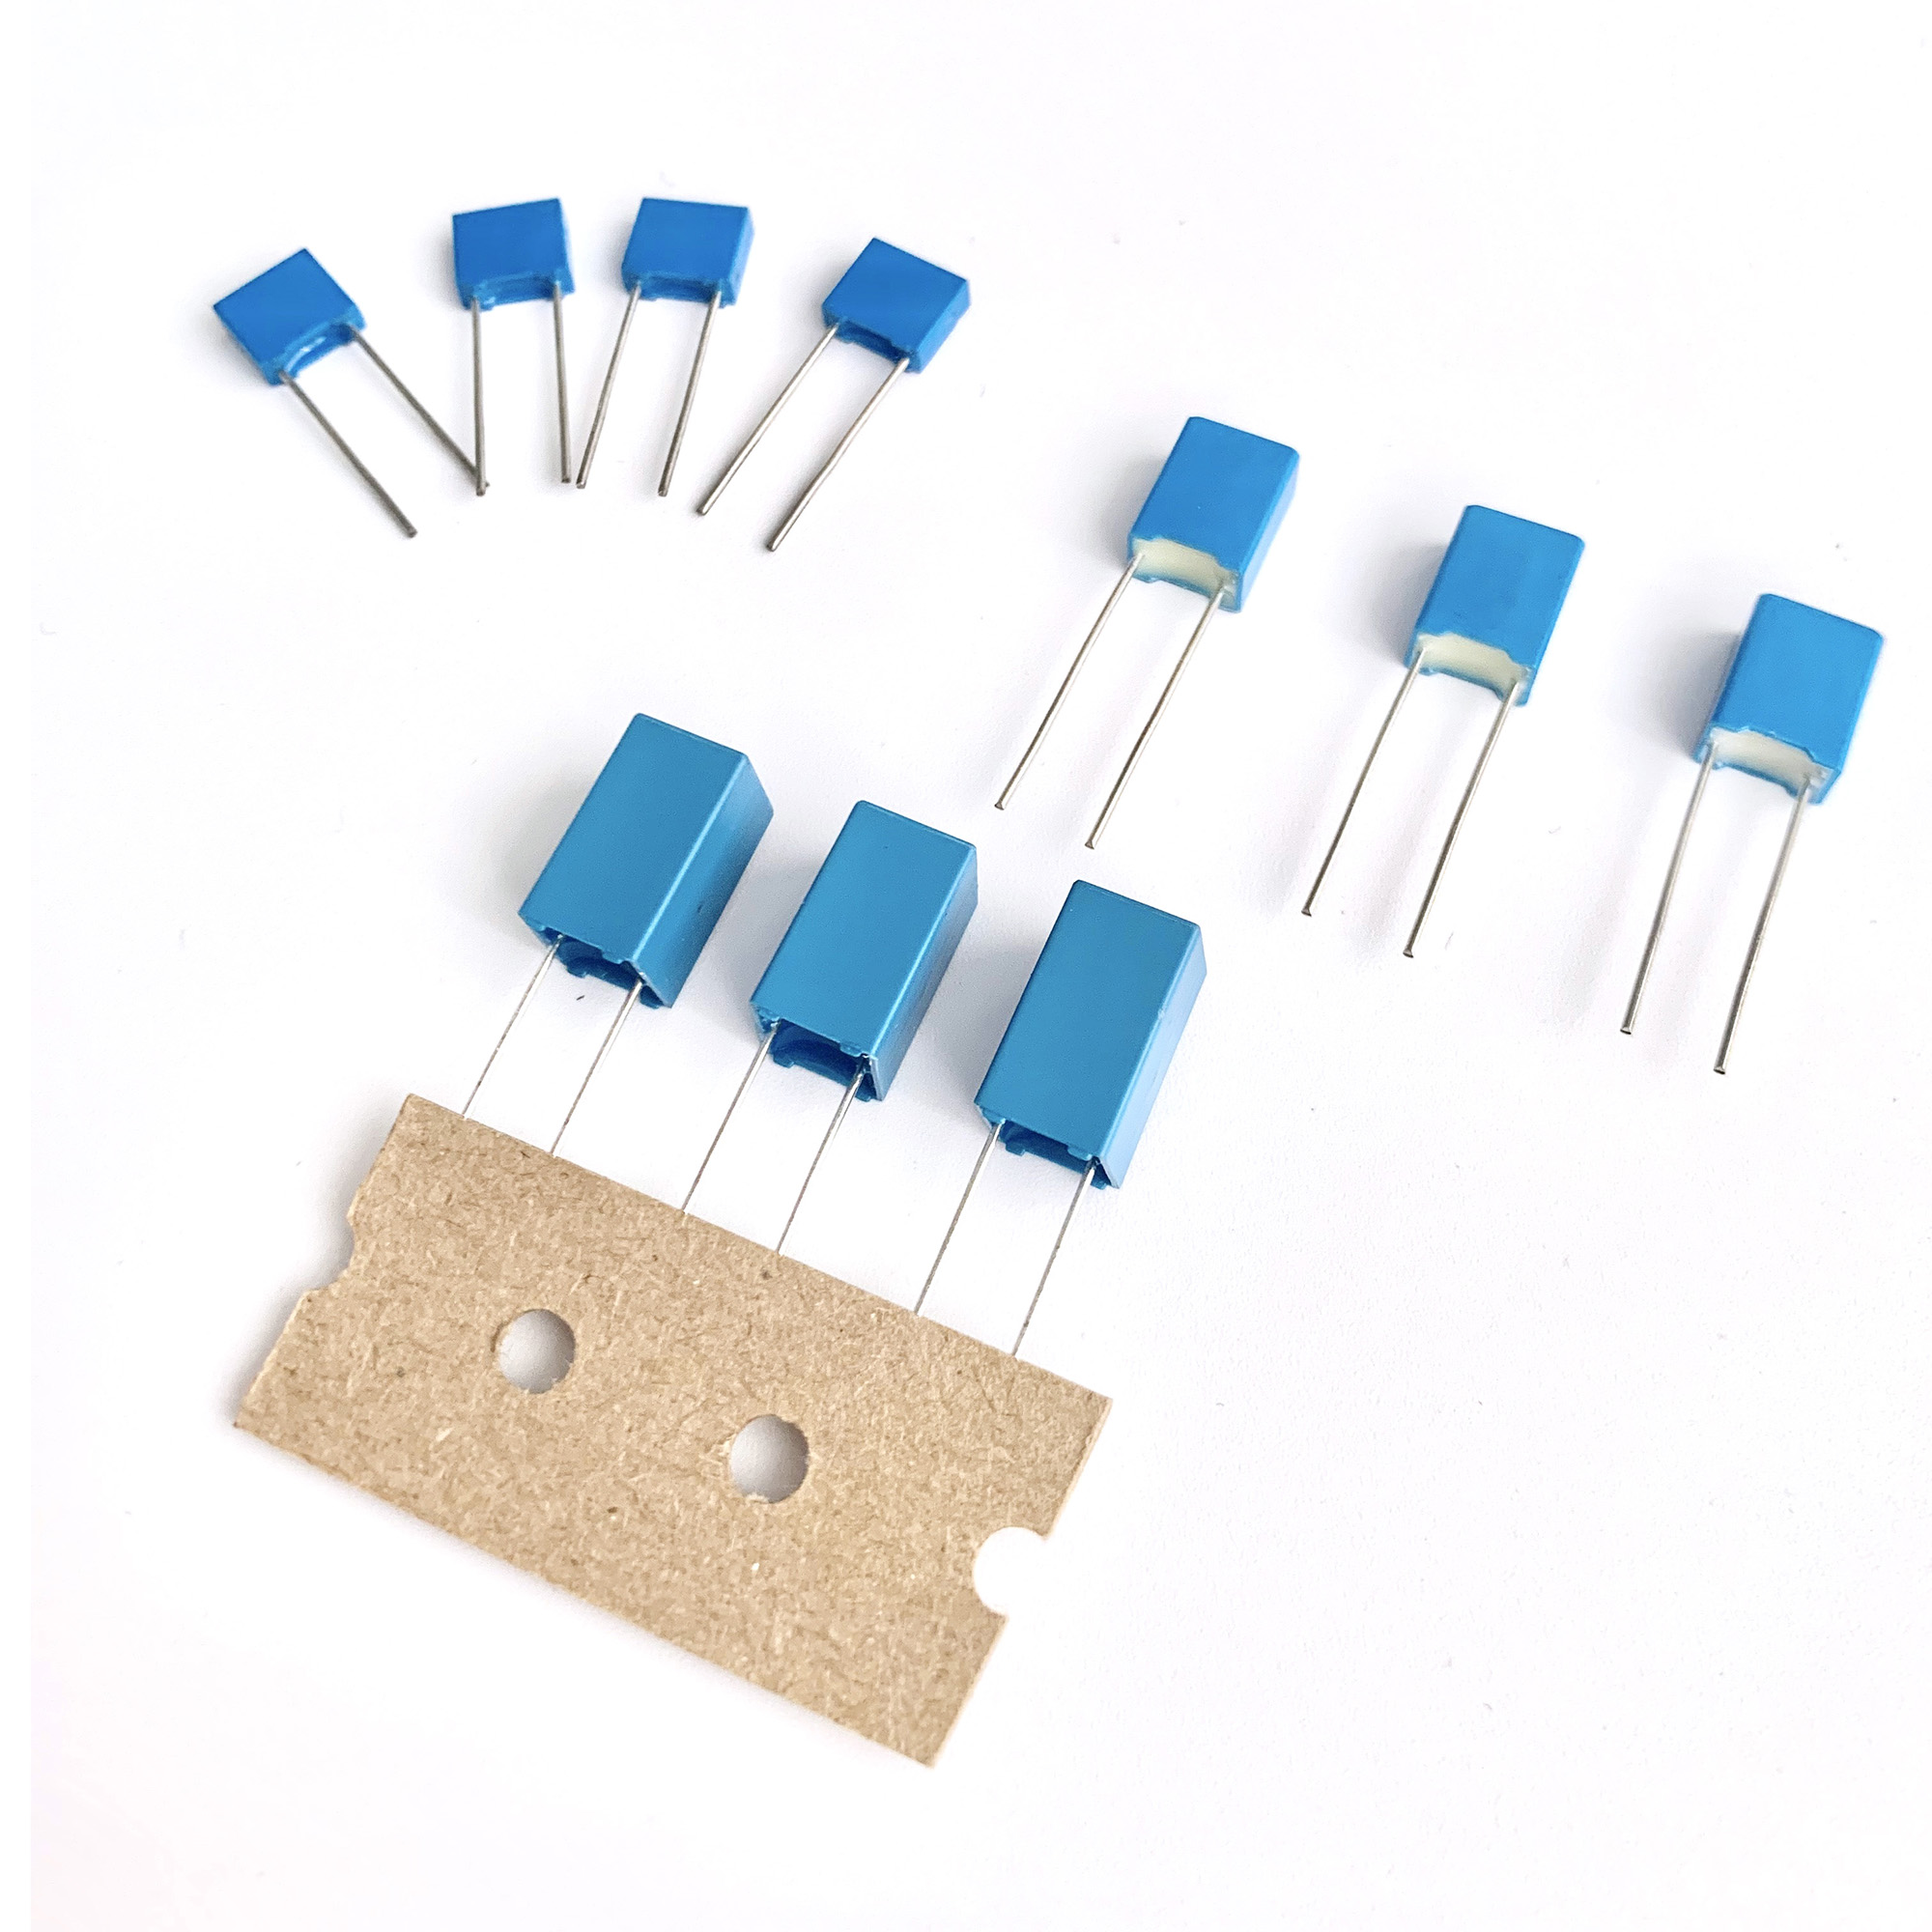 Manufacturer for X2 Metallized Polypropylene Film Capacitors -